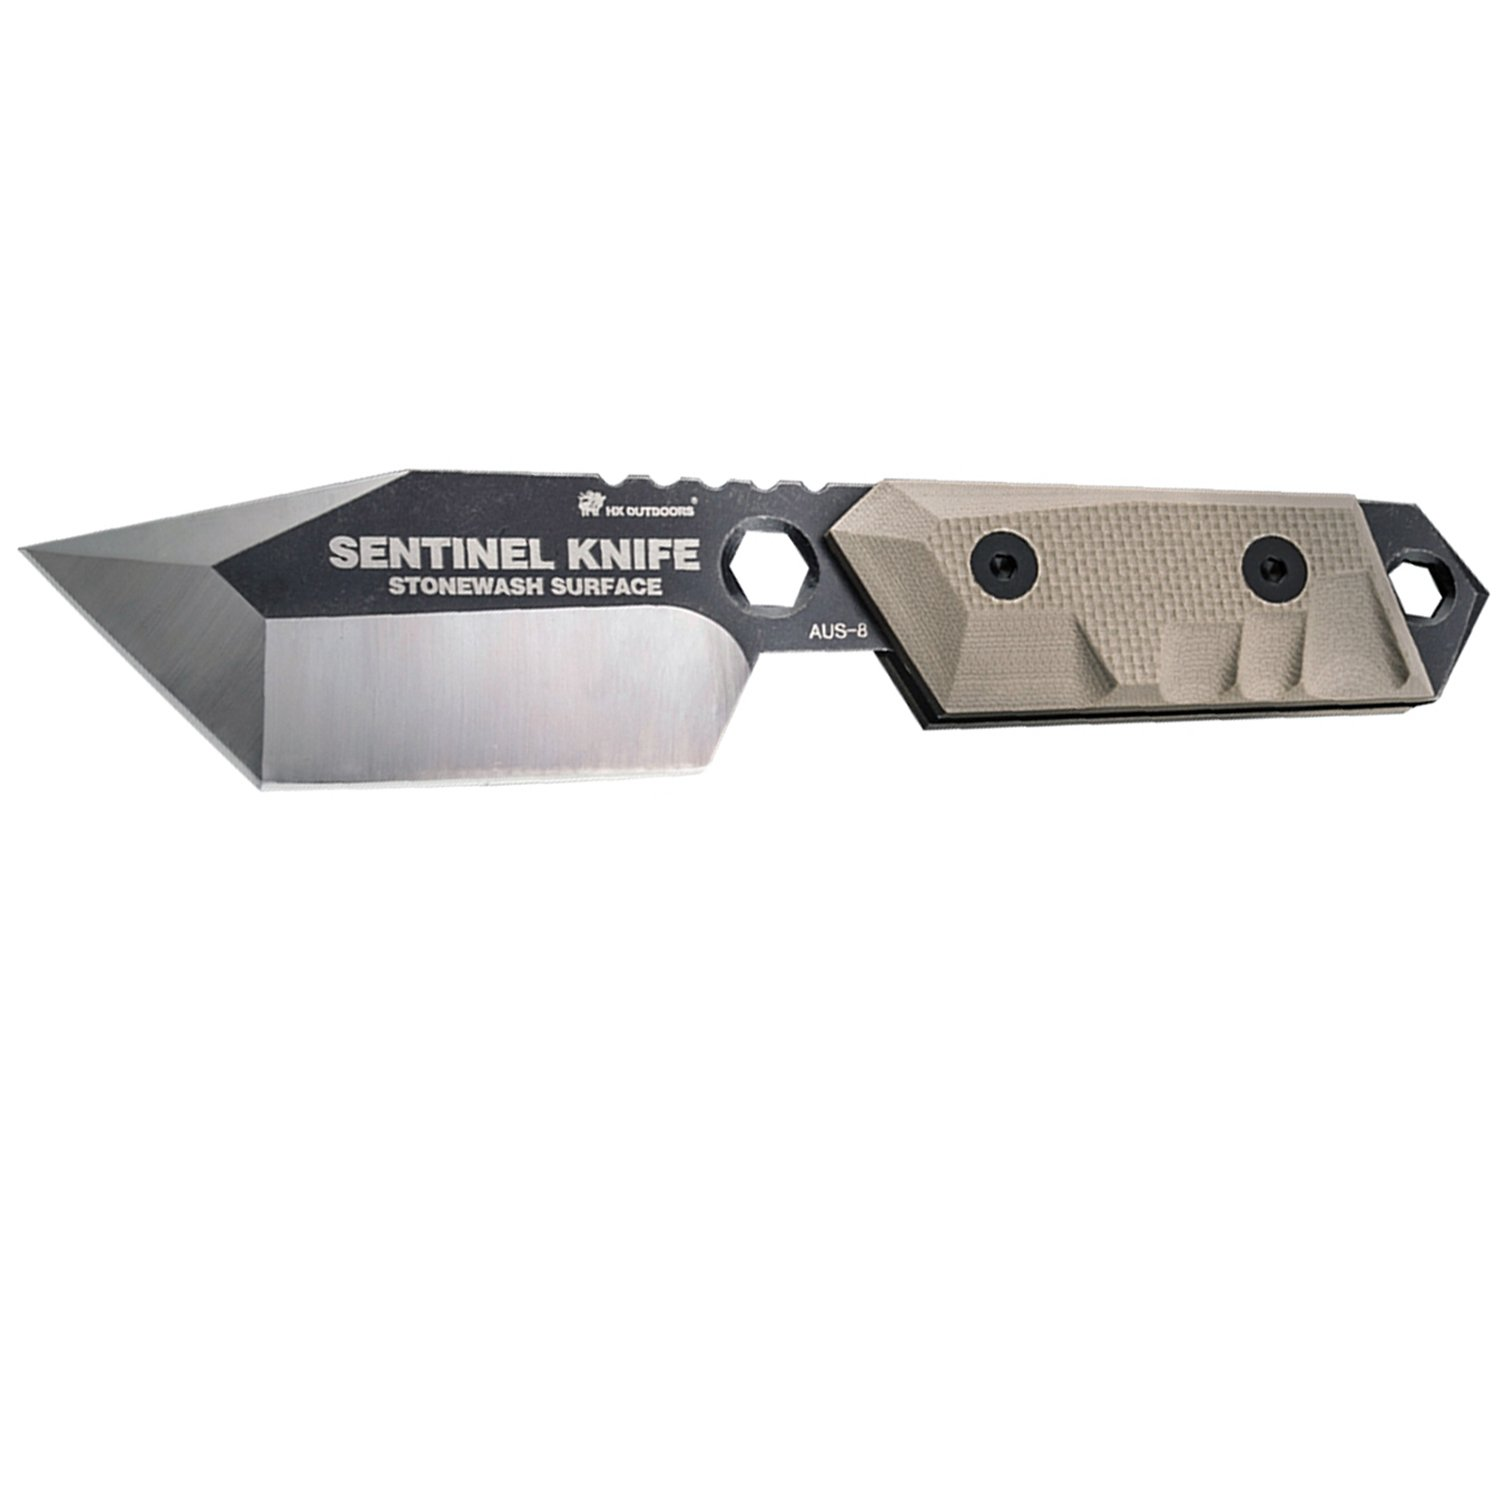 SENTINEL- outdoors survival tactical knife fixed blade knives with sheath tanto knife special forces tactical knife G10 Handle